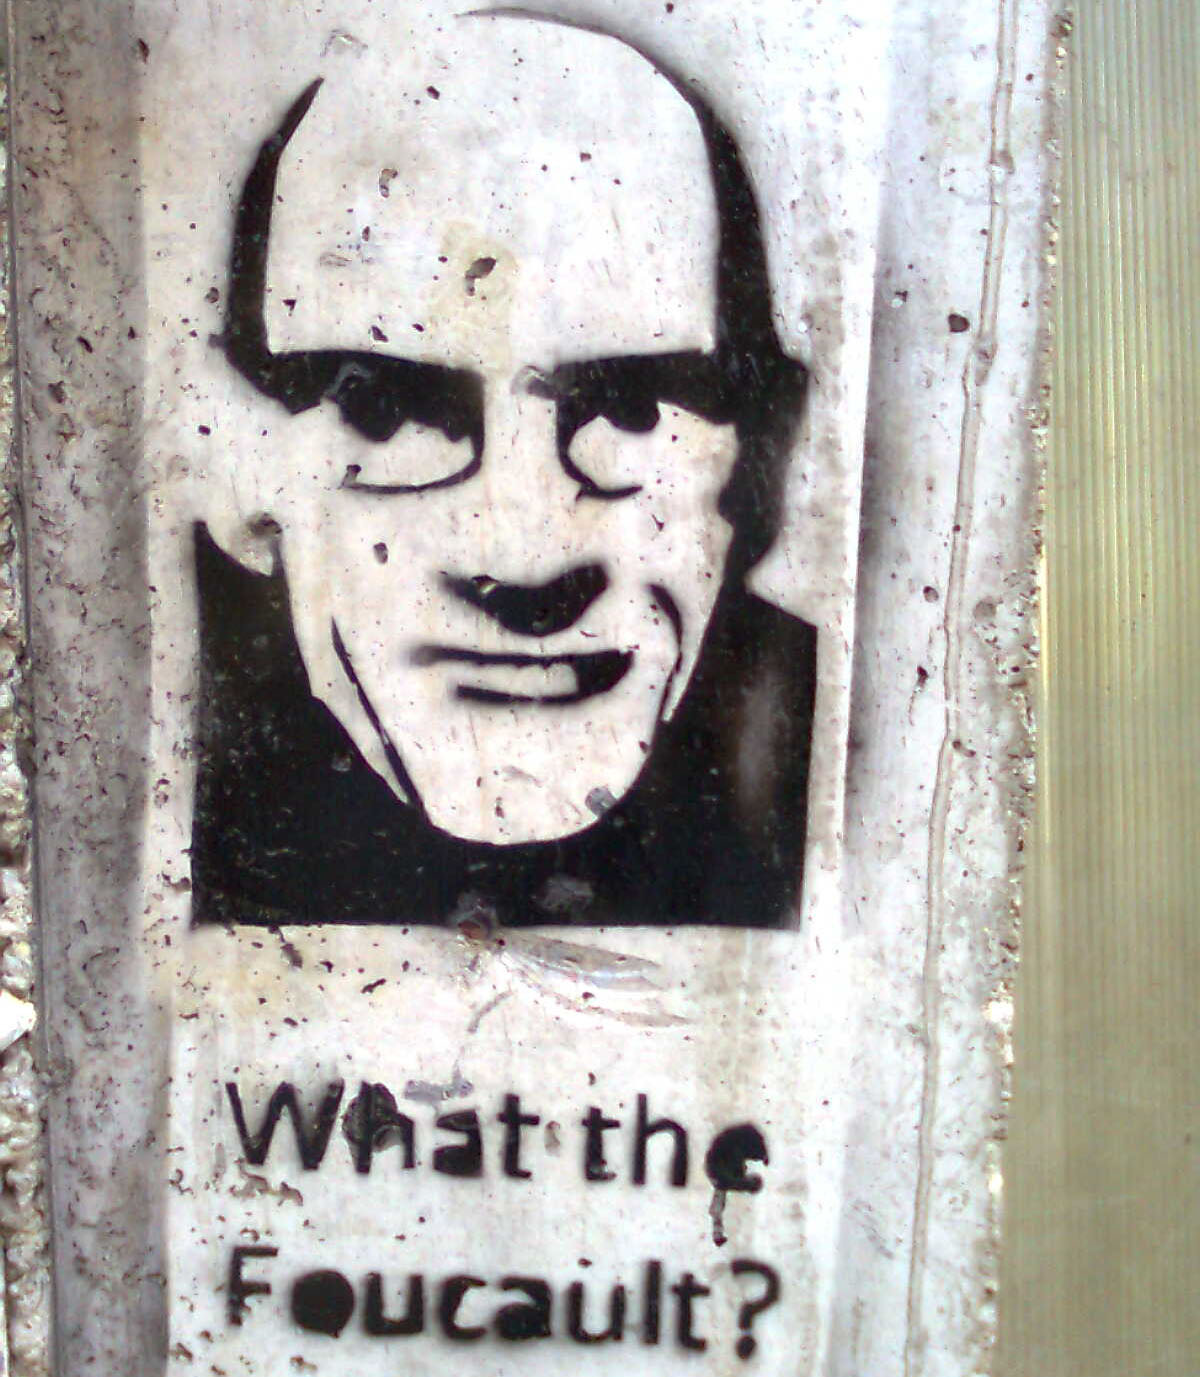 "Graffiti image in black and white featuring an iconic image of Michel Foucault with the text ""What the Foucault?"" underneath"